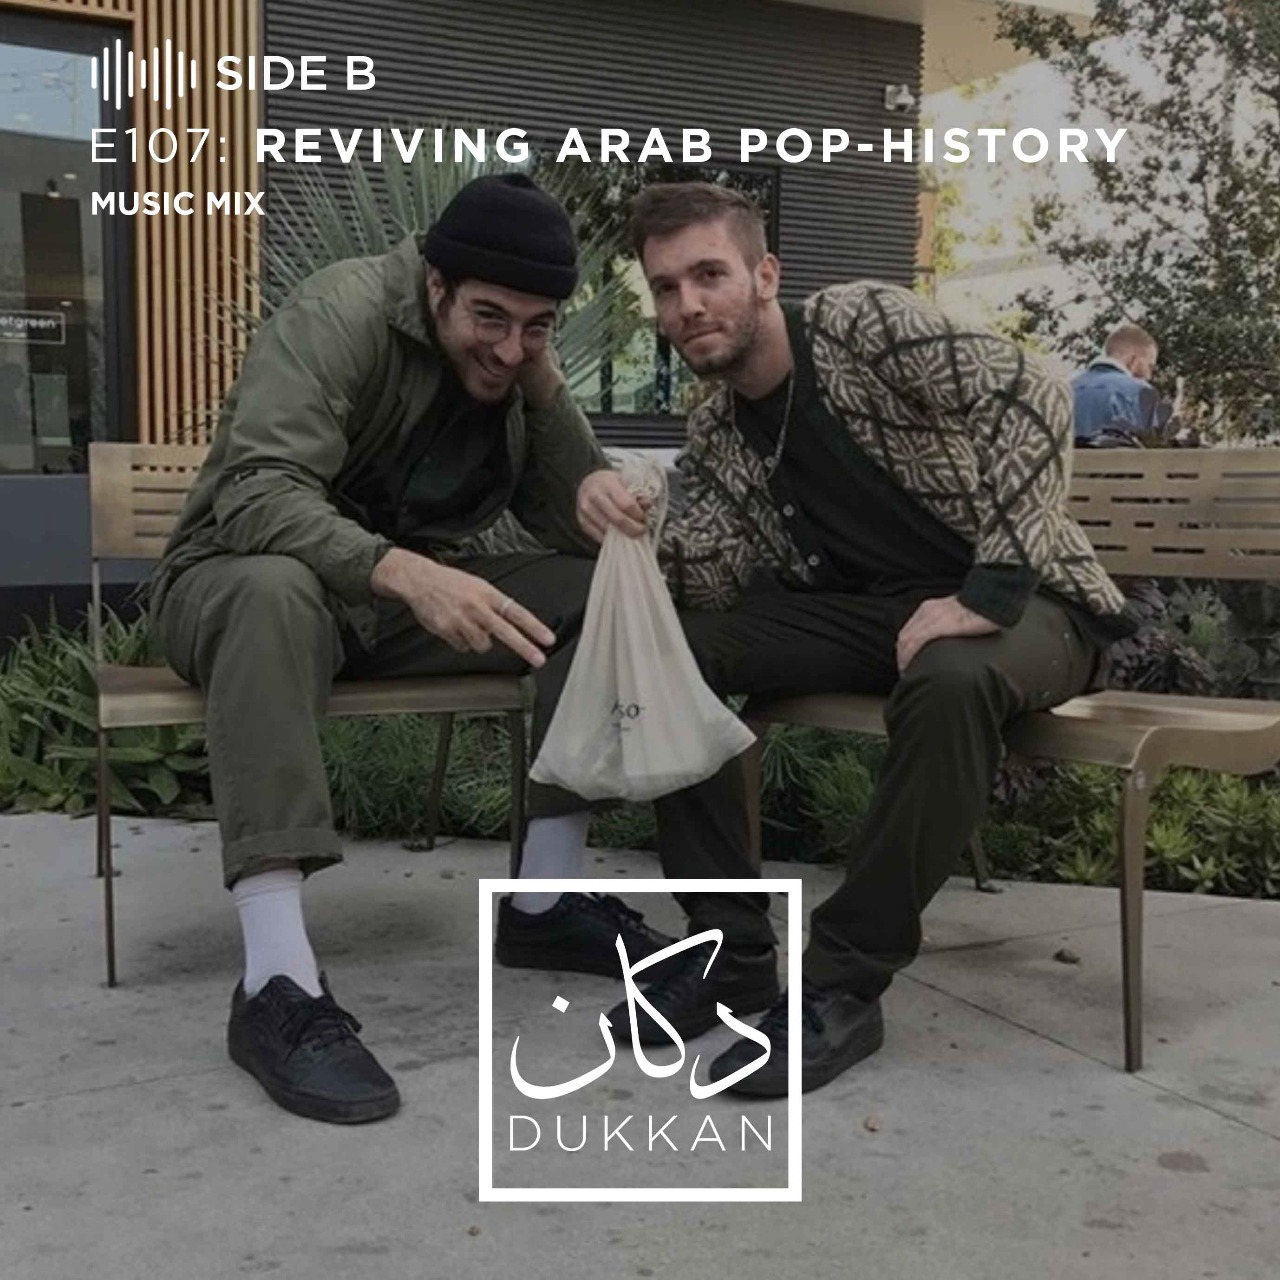 E107 - Side B: Reviving Arab Pop-History (Curated by OPENISM & C Style)